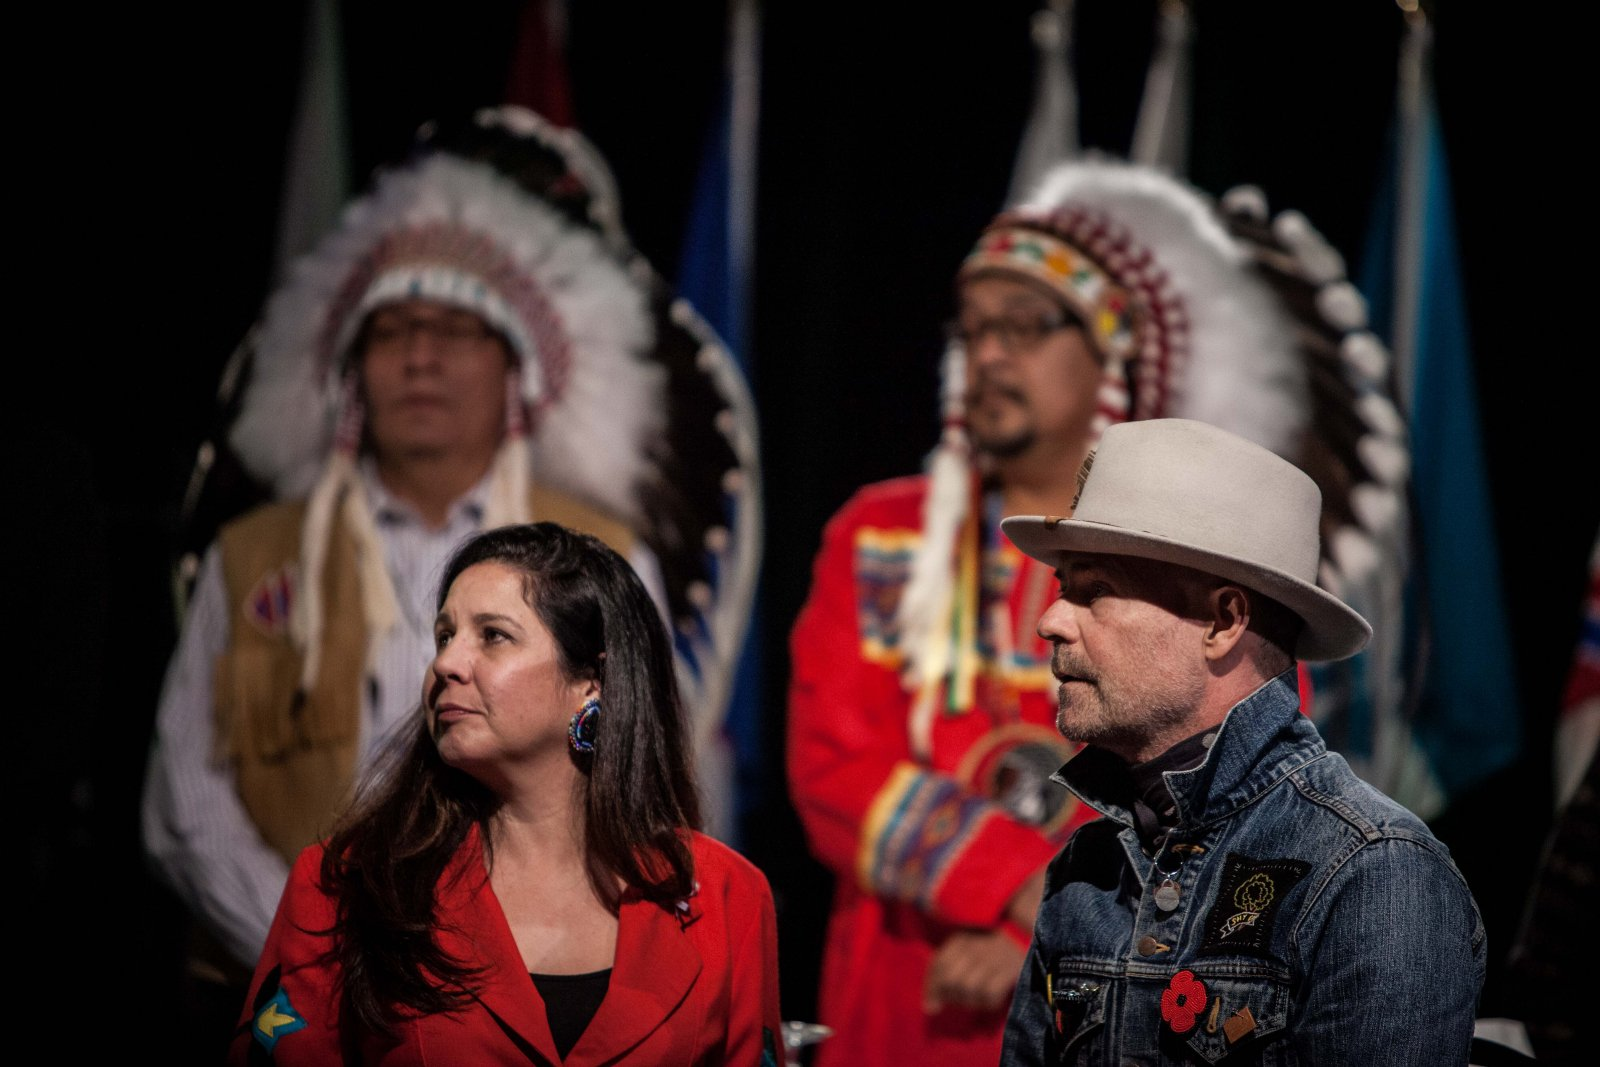 Gord Downie, Tragically Hip, Assembly of First Nations, Special Chiefs Assembly